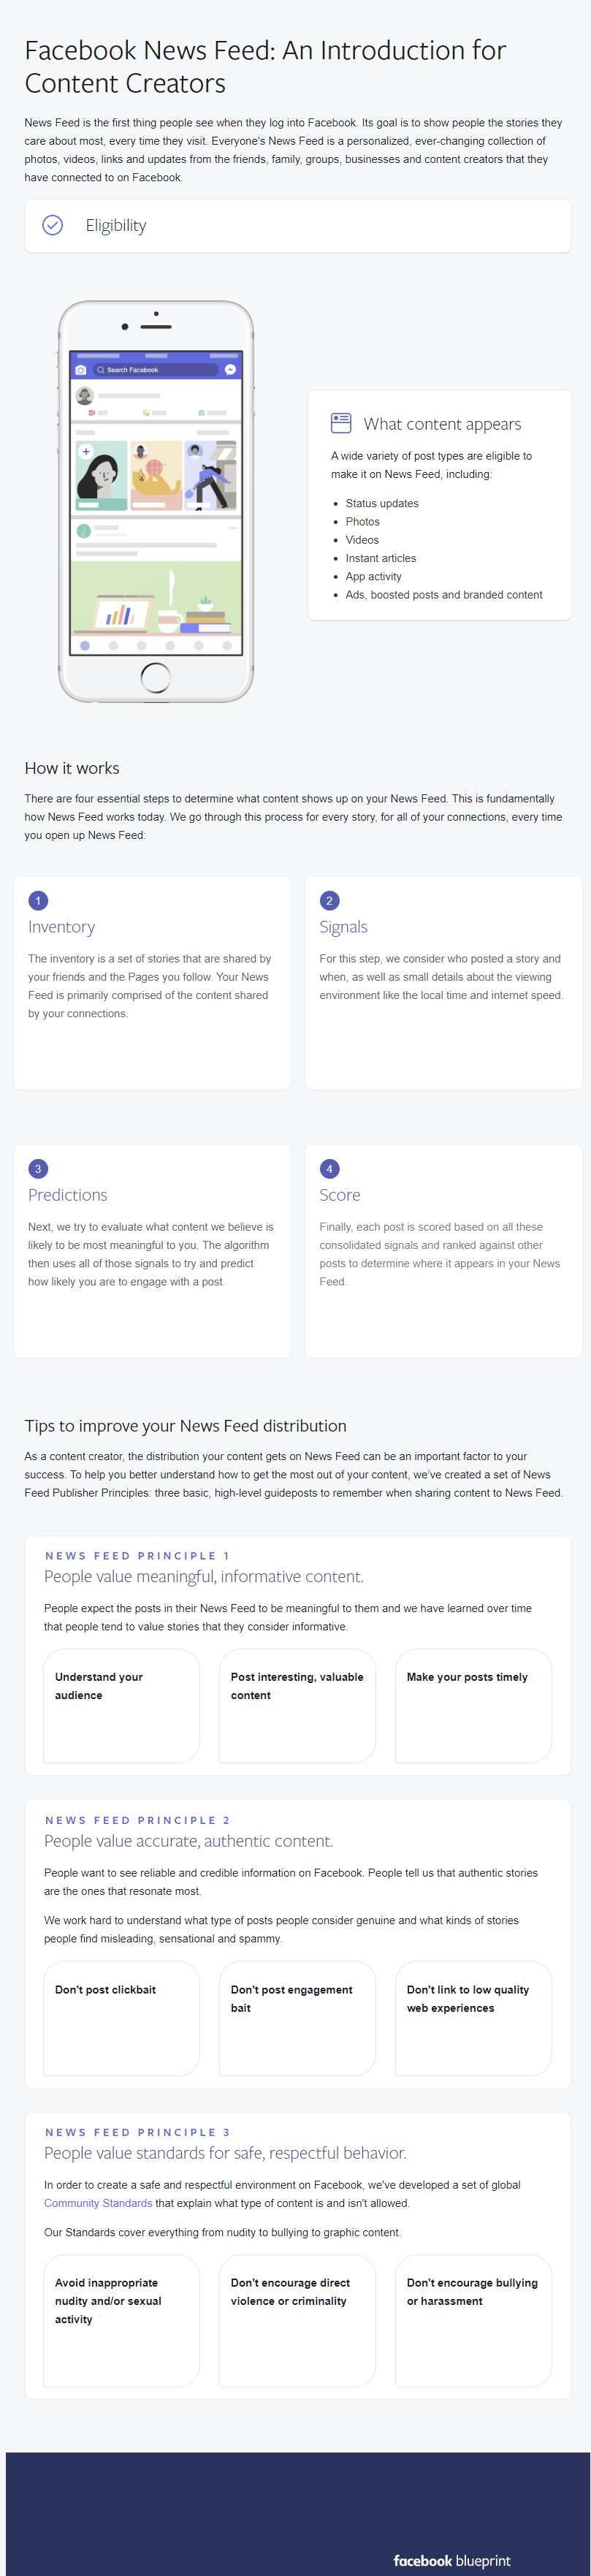 Infographic outlines Facebook News Feed tips and pointers